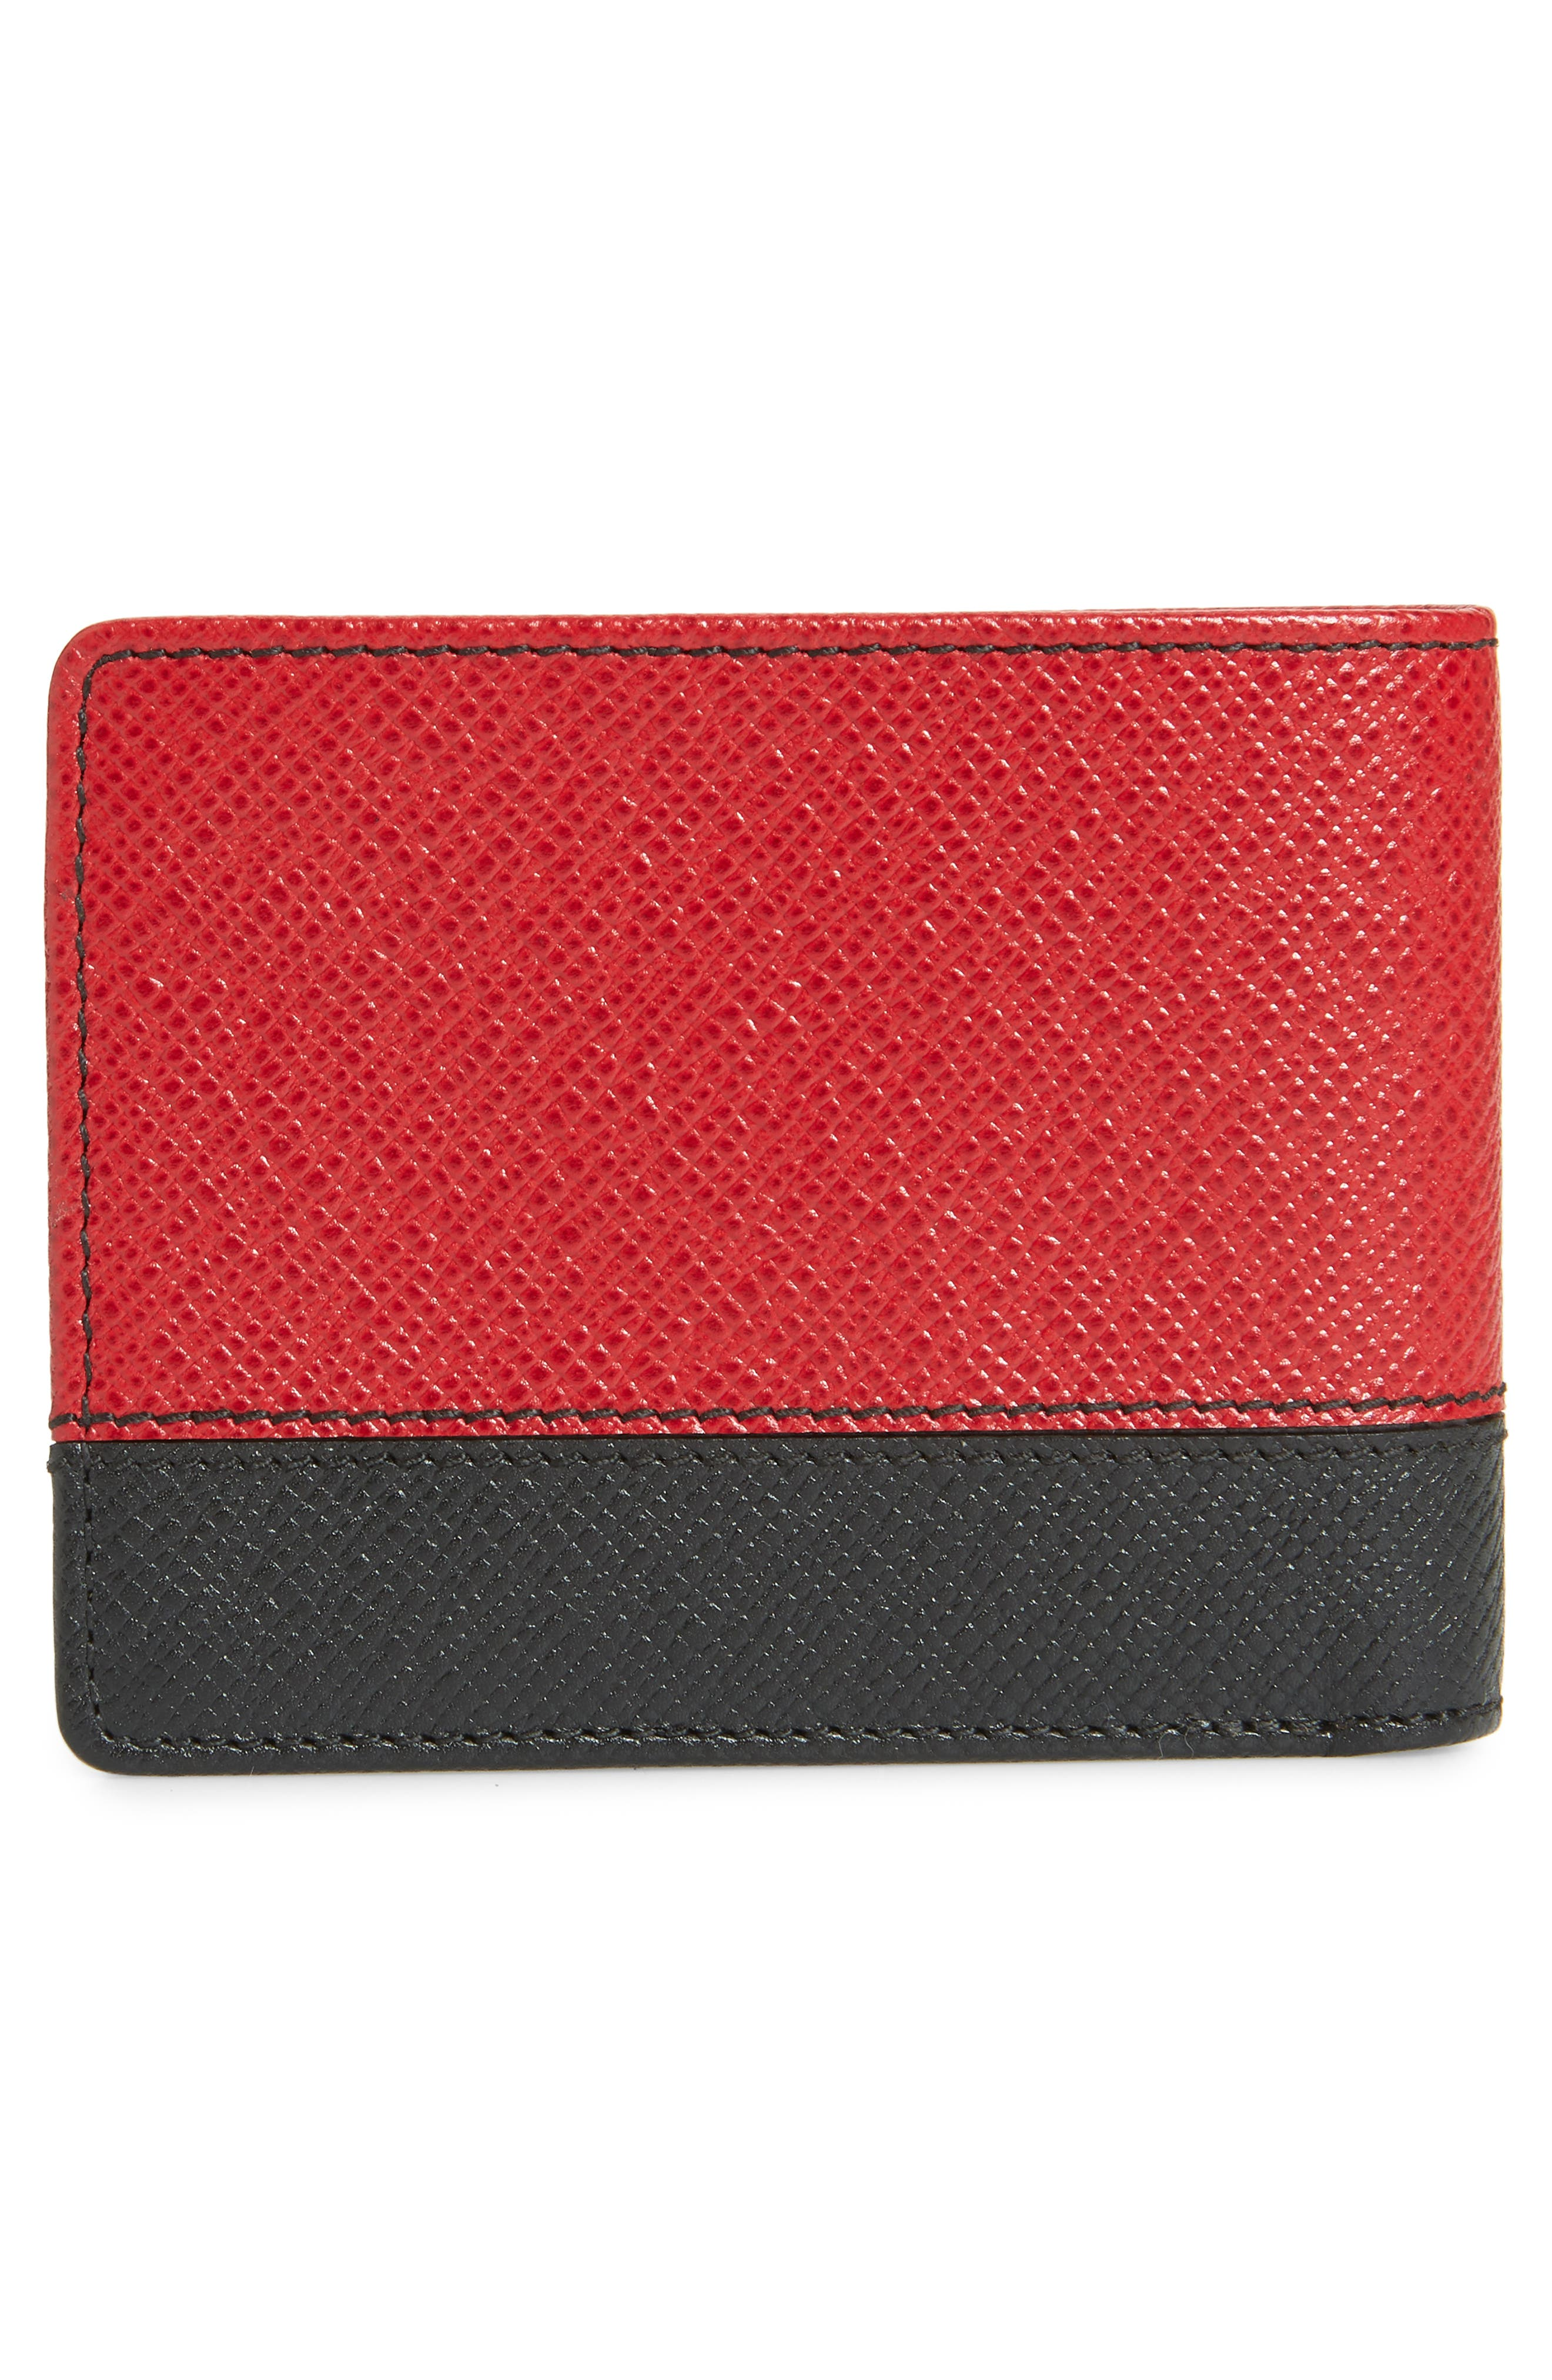 Embossed Leather Wallet,                             Alternate thumbnail 3, color,                             DARK RED